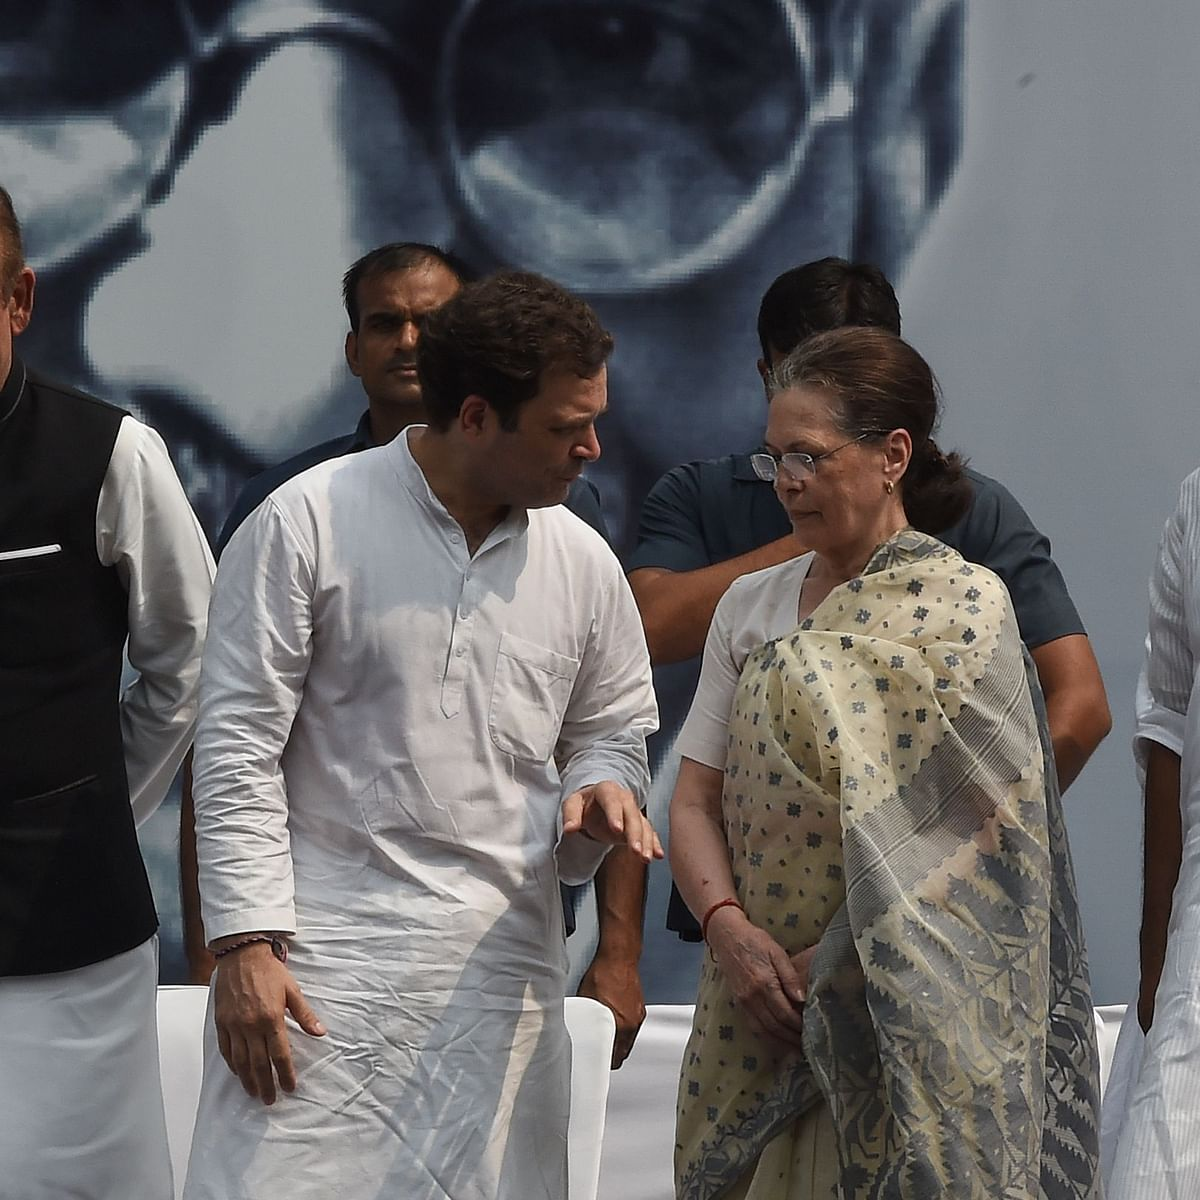 Critical point for Congress to lean into compromise